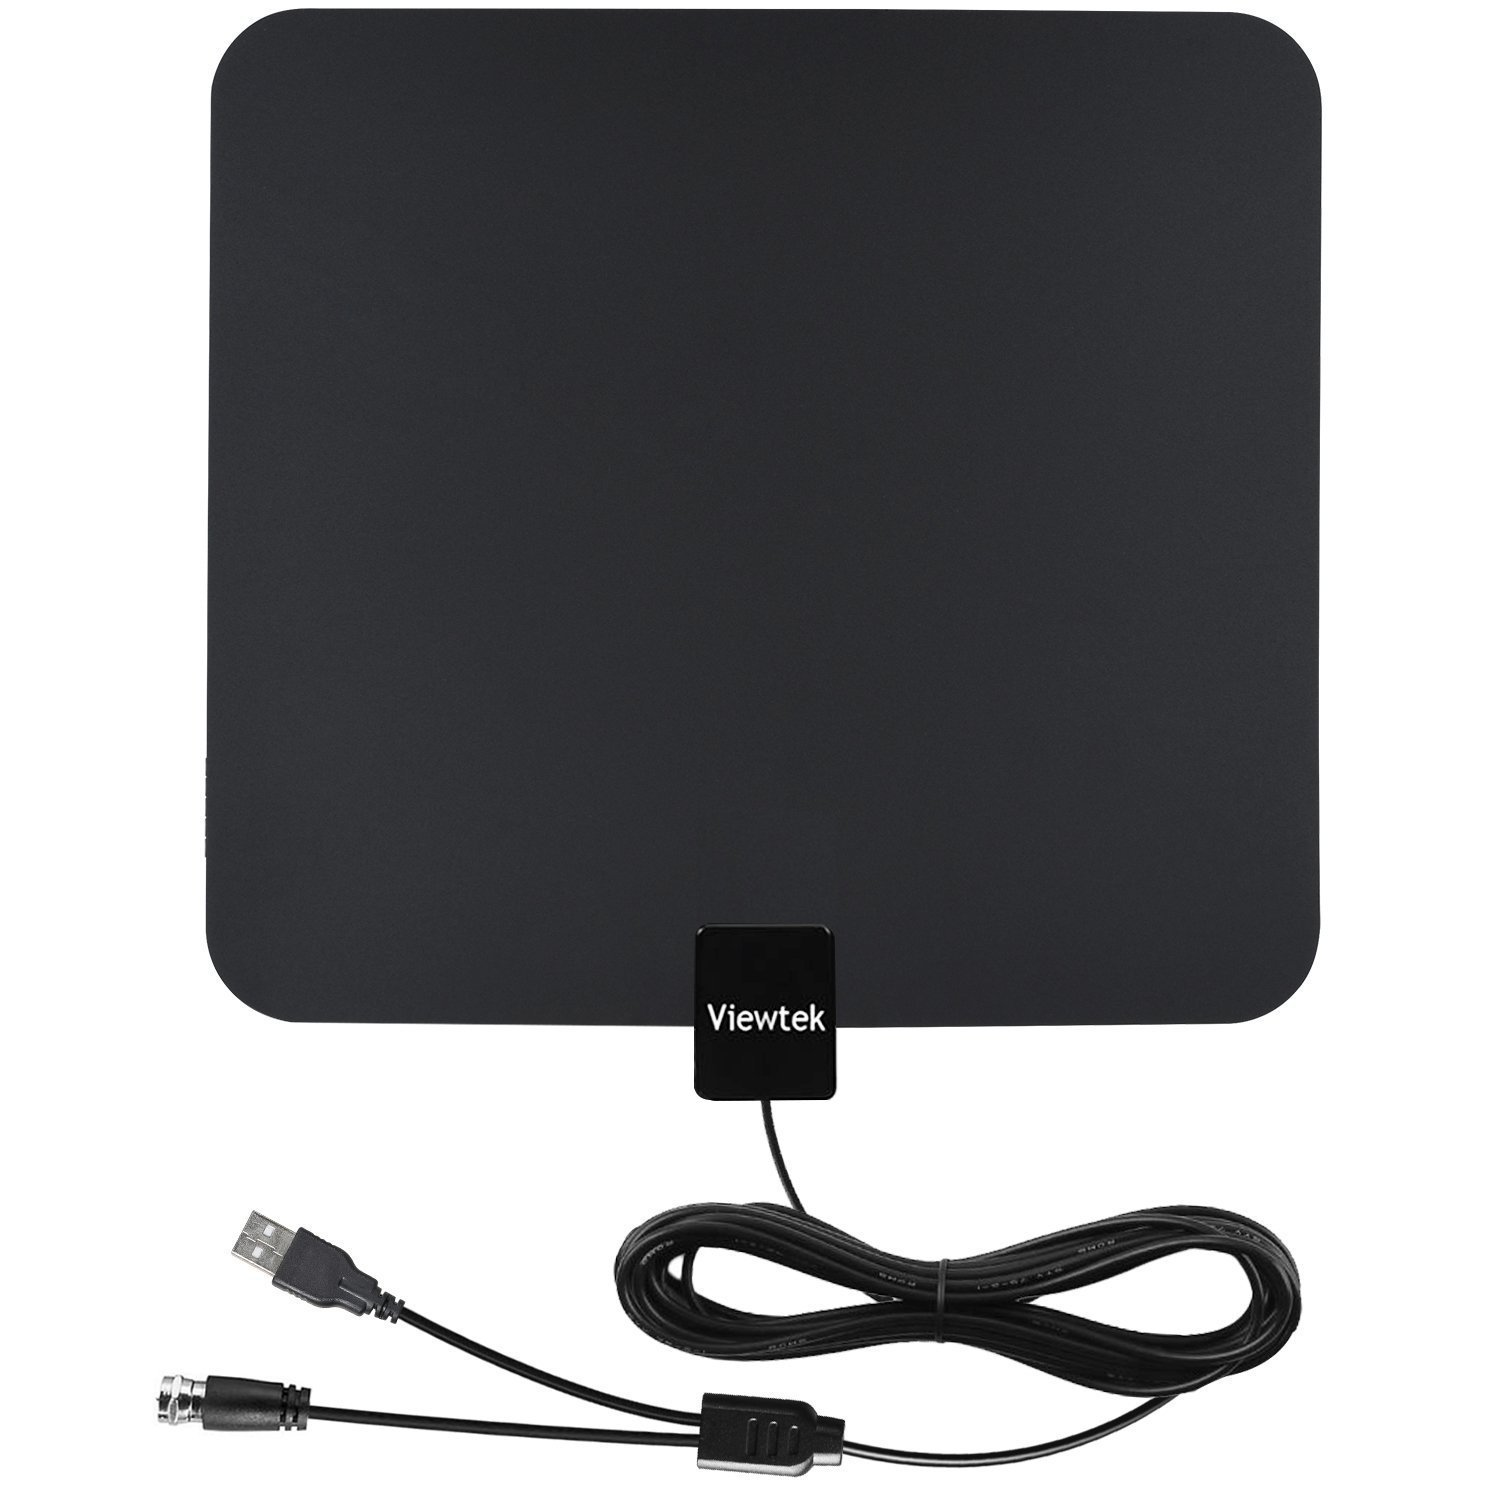 HDTV Antenna- VIEWTEK Amplified Digital Indoor TV Antenna 50 Mile Range with Amplifier, 13 Ft Copper Coaxial Cable with USB Power Supply